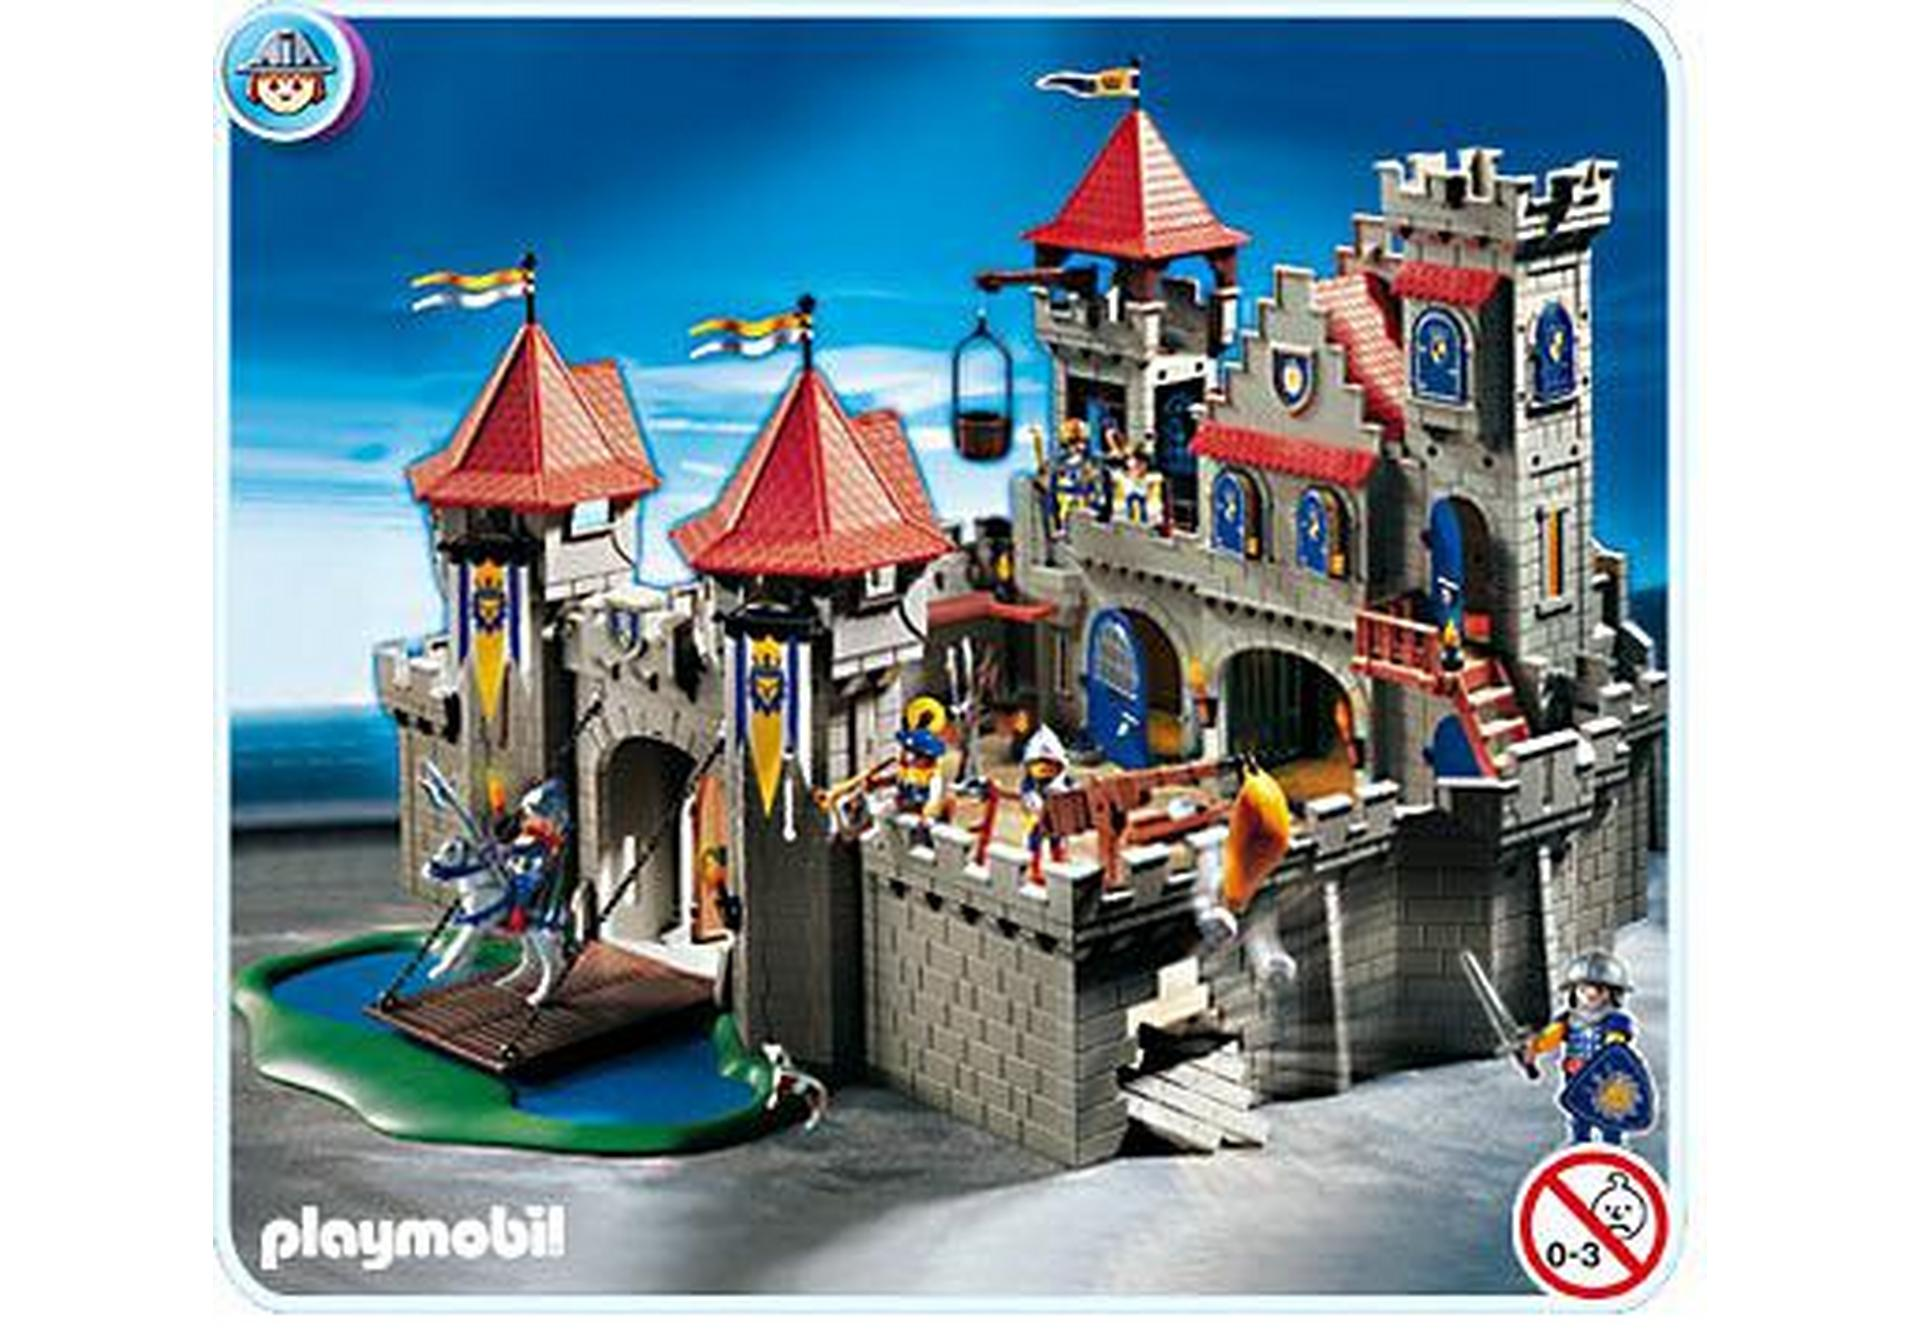 Grand ch teau royal 3268 a playmobil france for Plan chateau fort playmobil